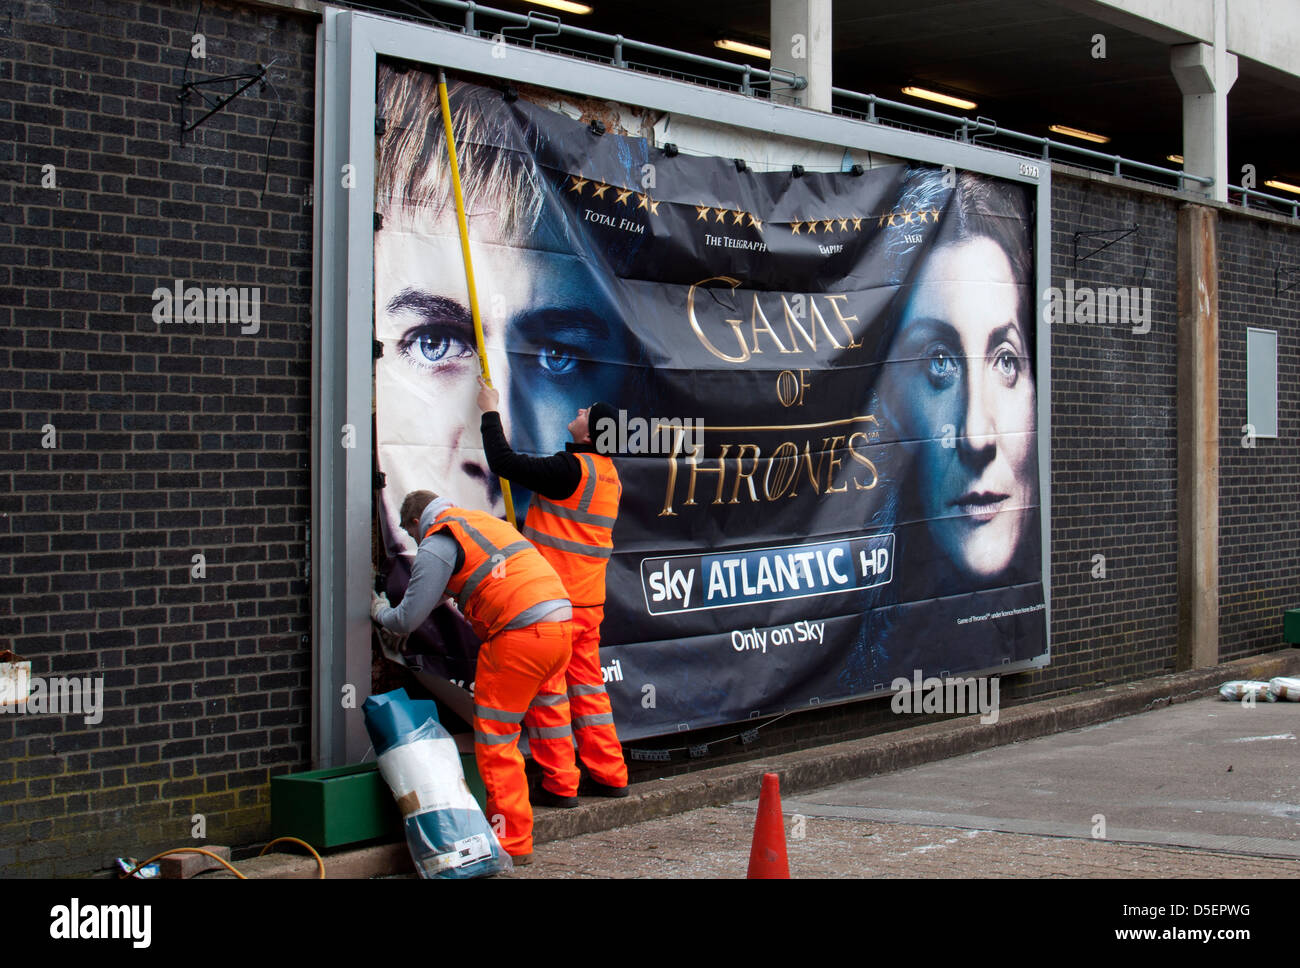 Men putting up billboard poster, Coventry railway station, UK - Stock Image